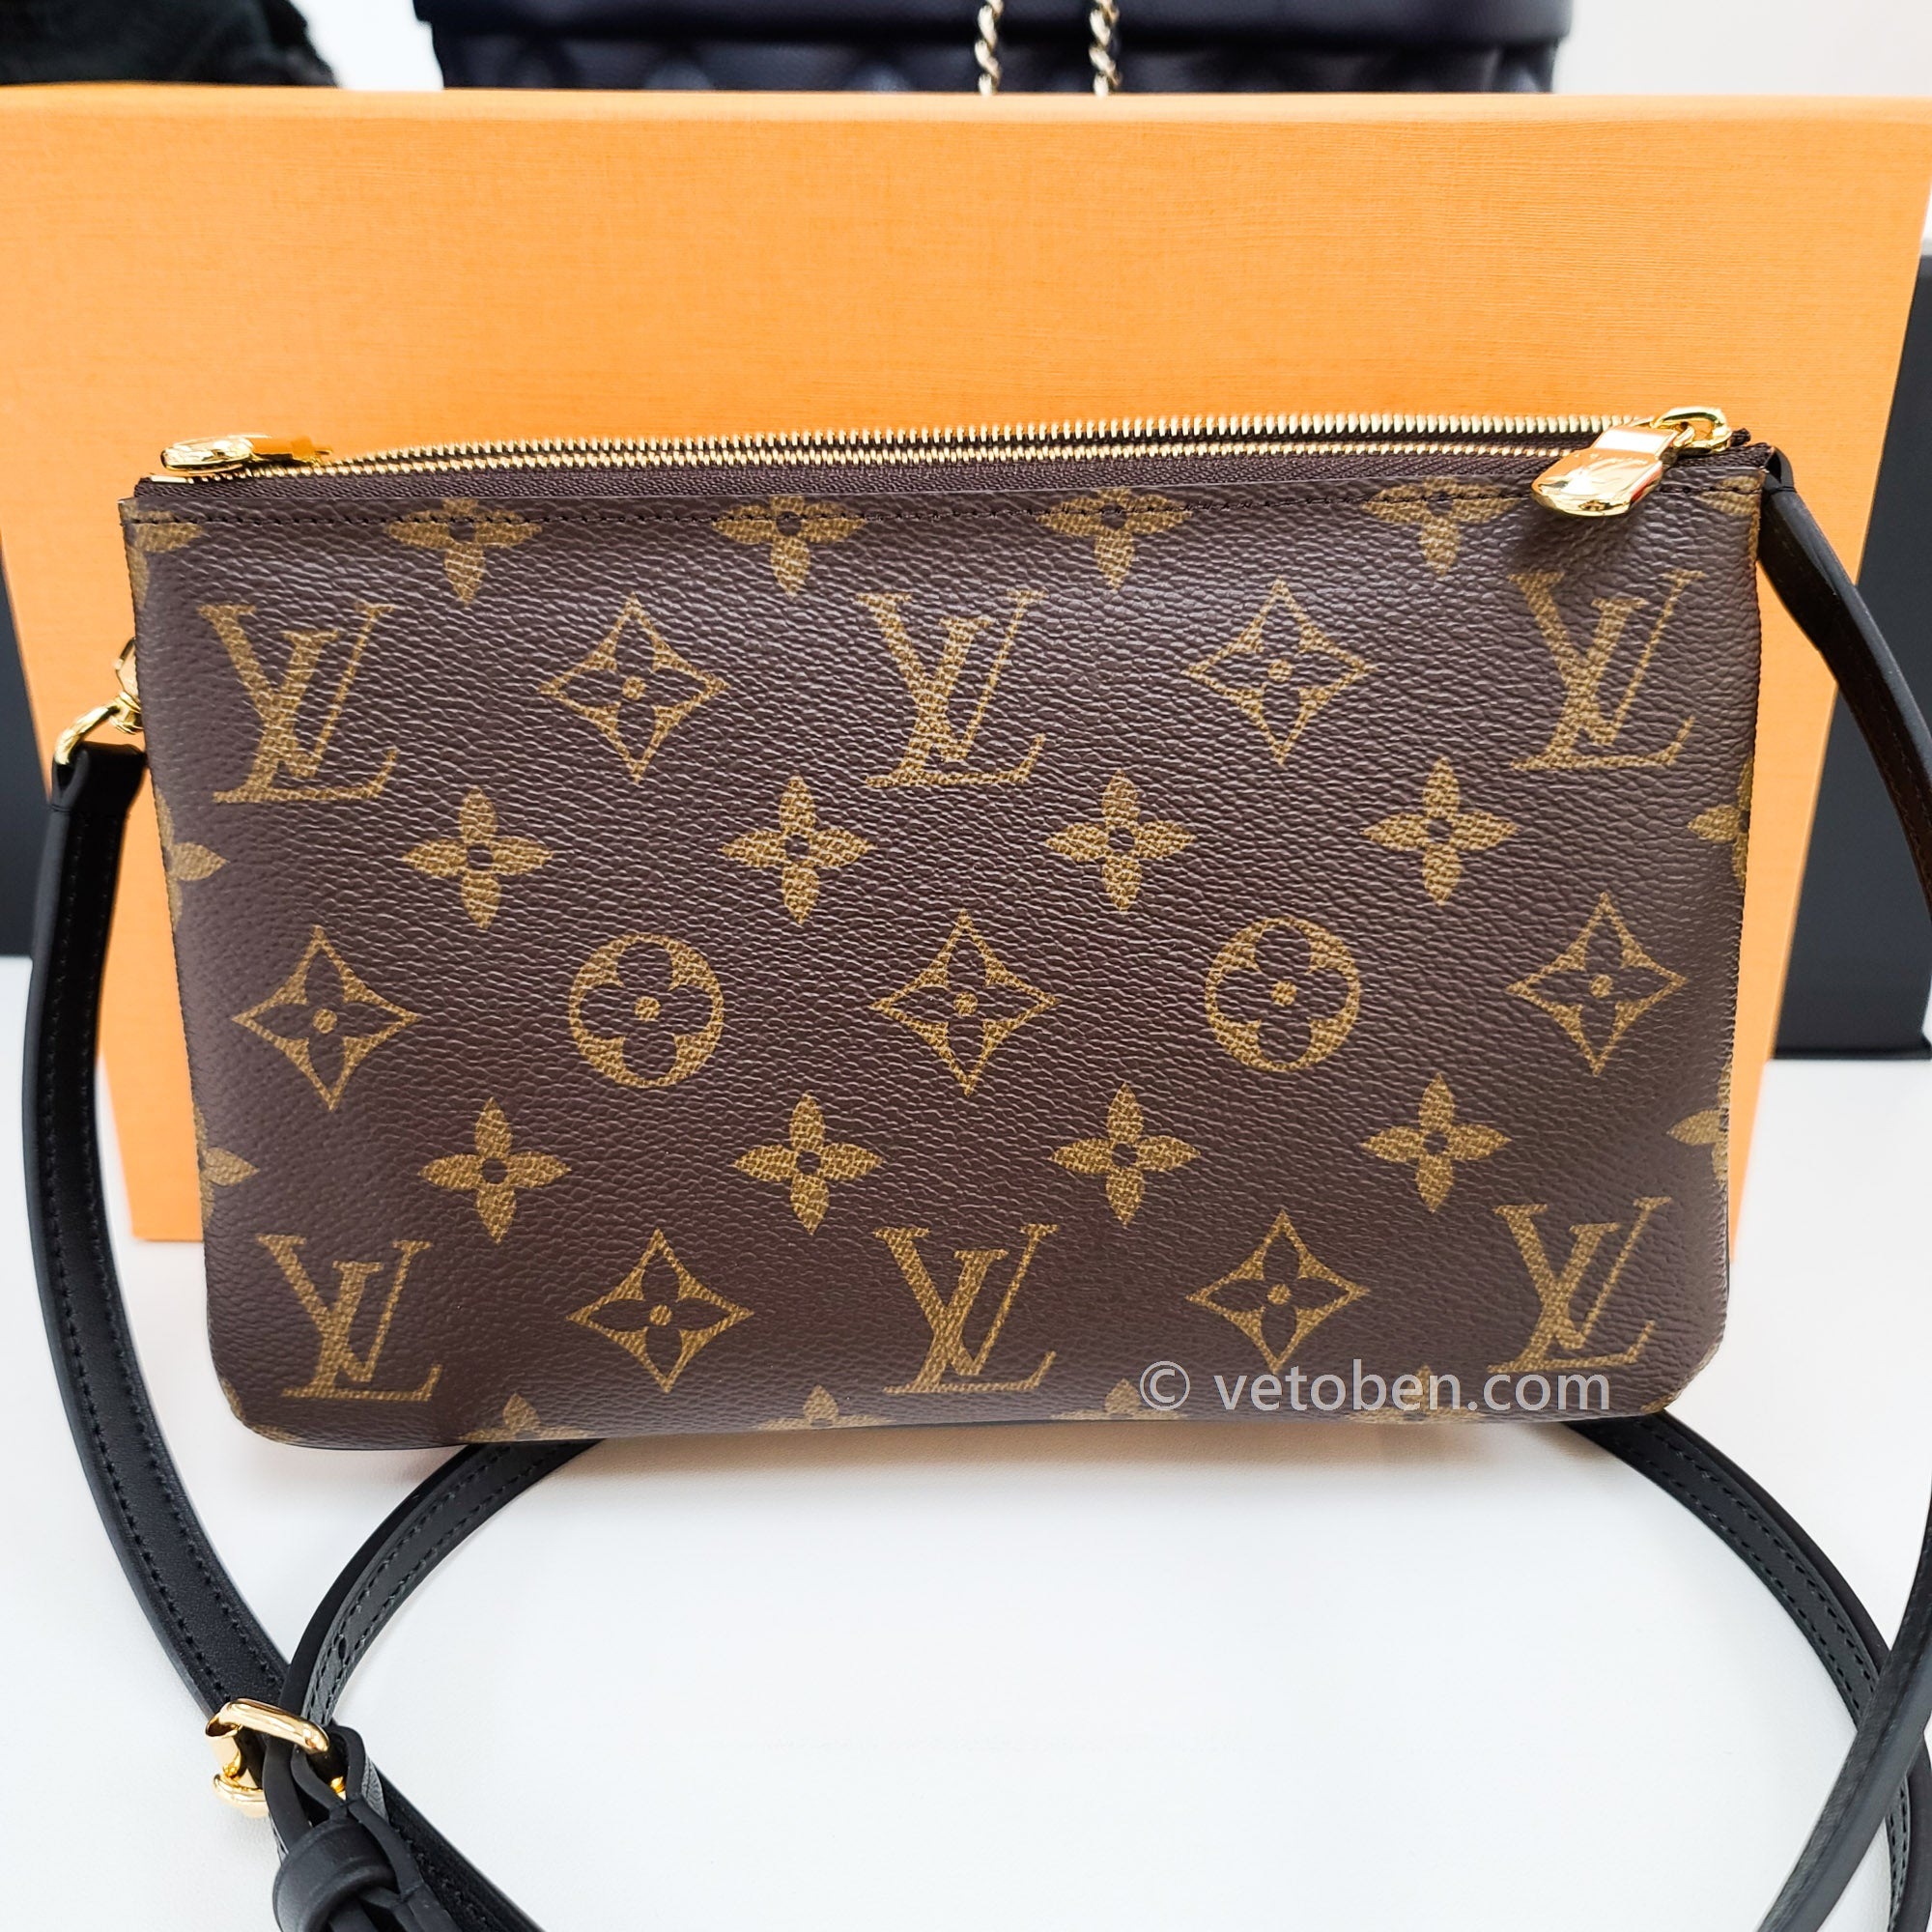 LOUIS VUITTON Reverse Monogram Giant Double Zip Pochette